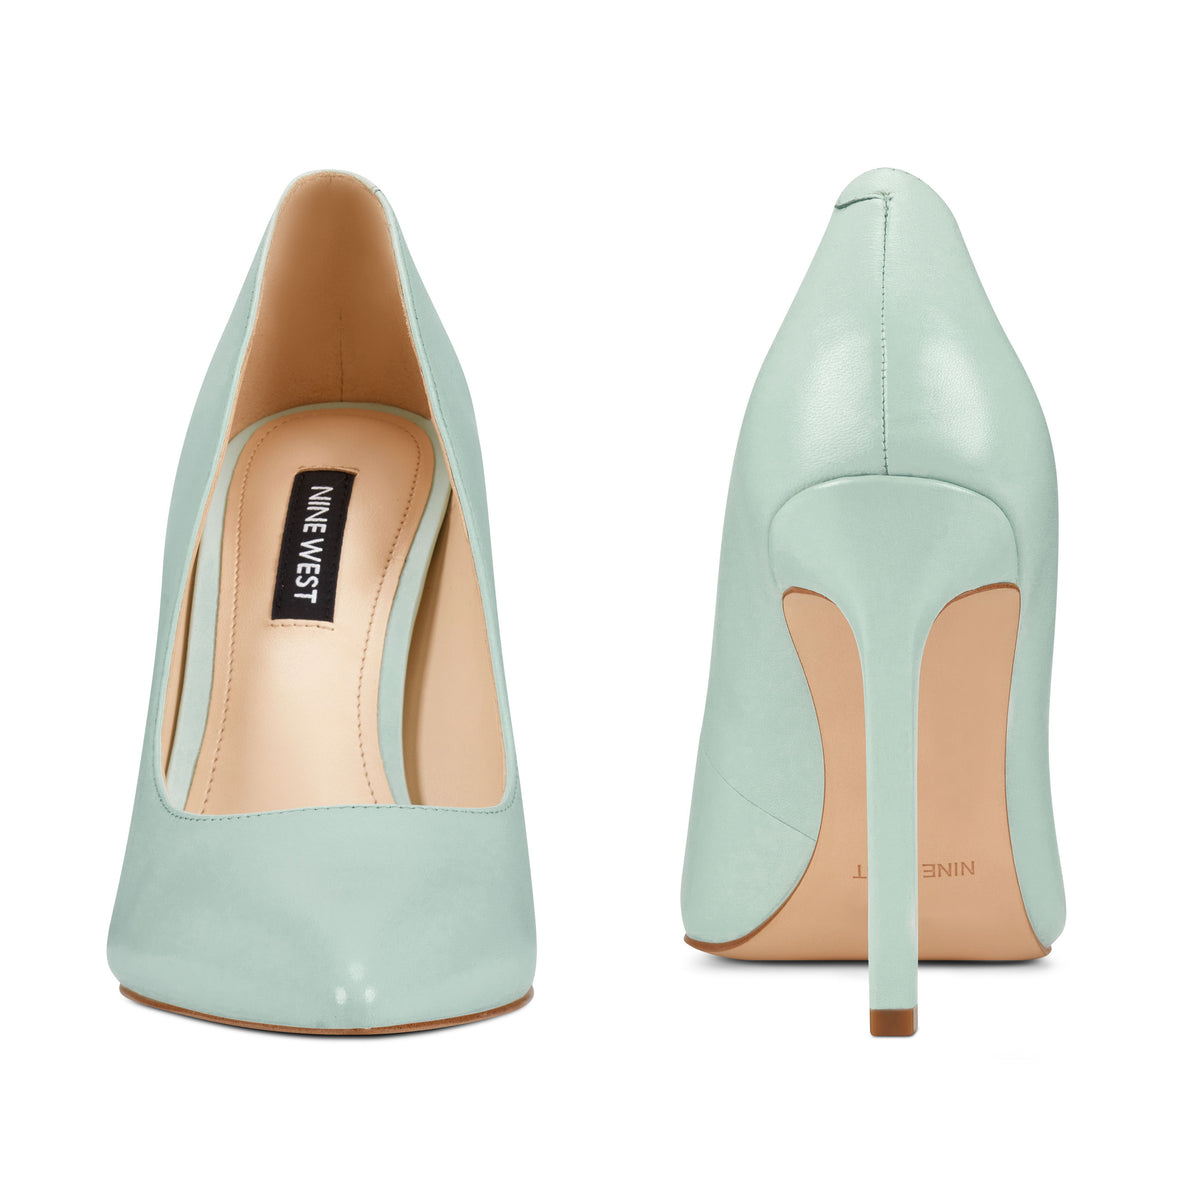 tatiana-pointy-toe-pumps-in-mint-green-leather